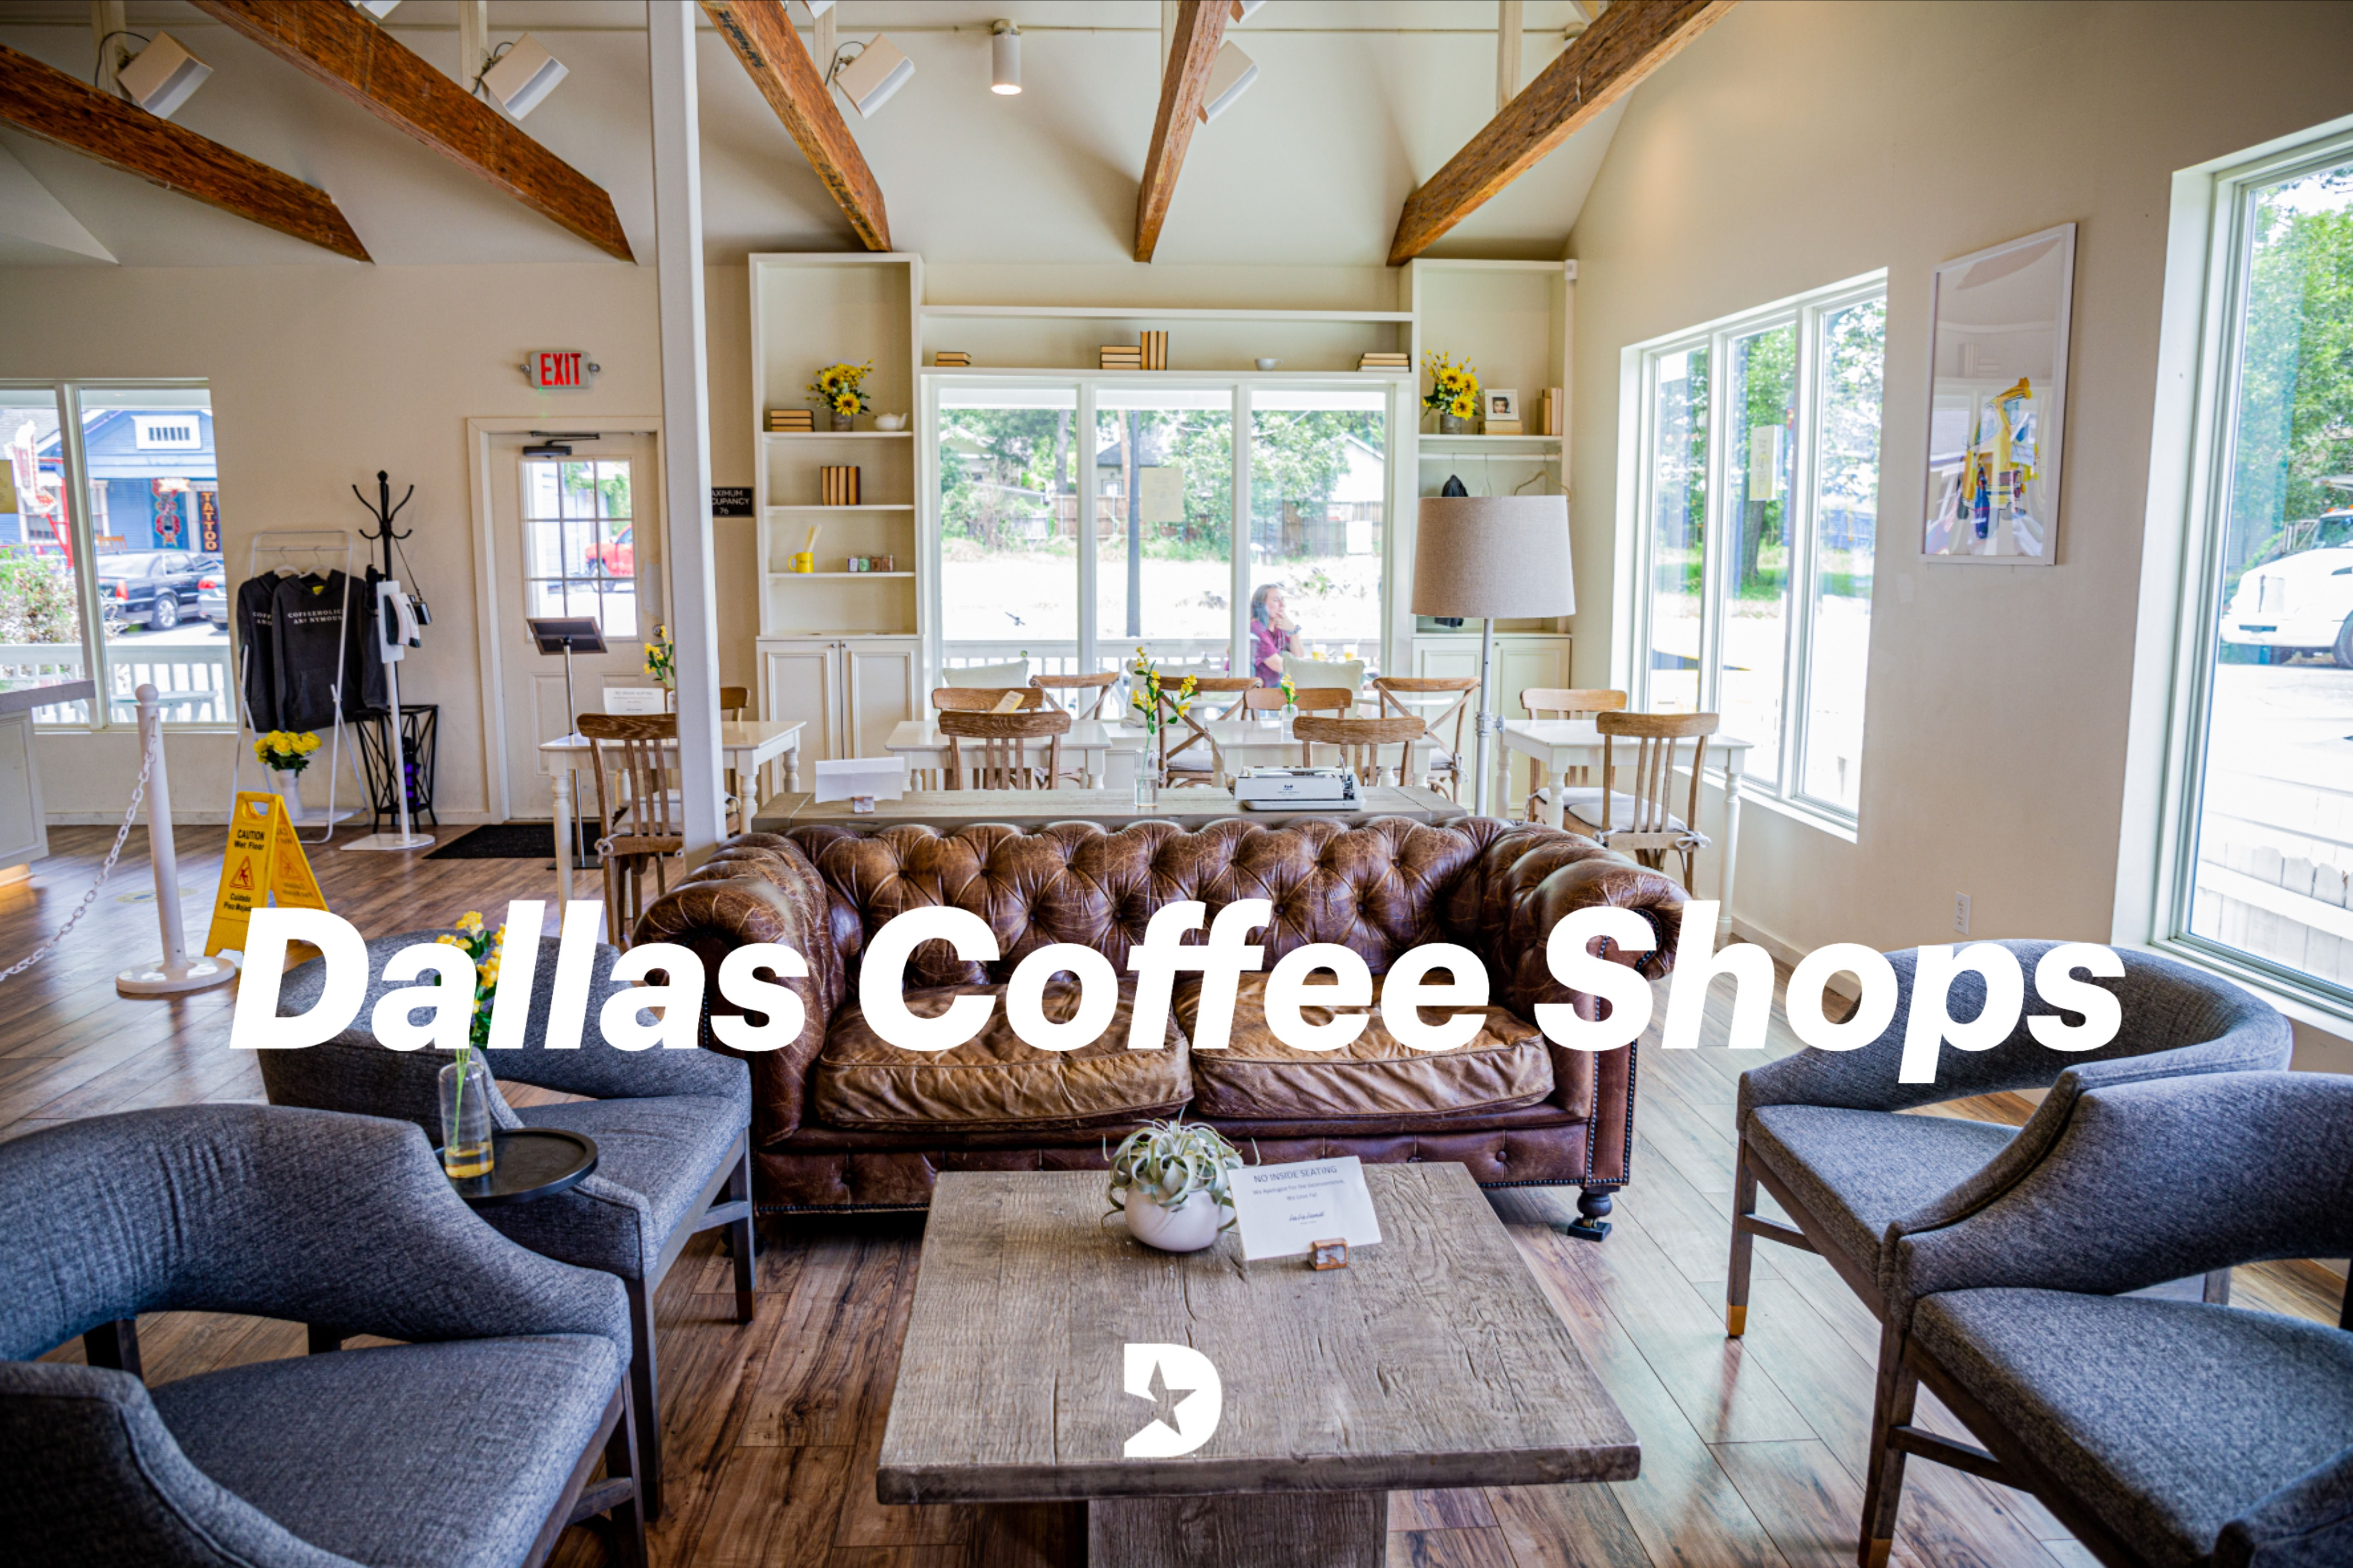 Dallas Coffee Shops For Coffee Snobs Best Coffee Shop Coffee Shop Best Coffee